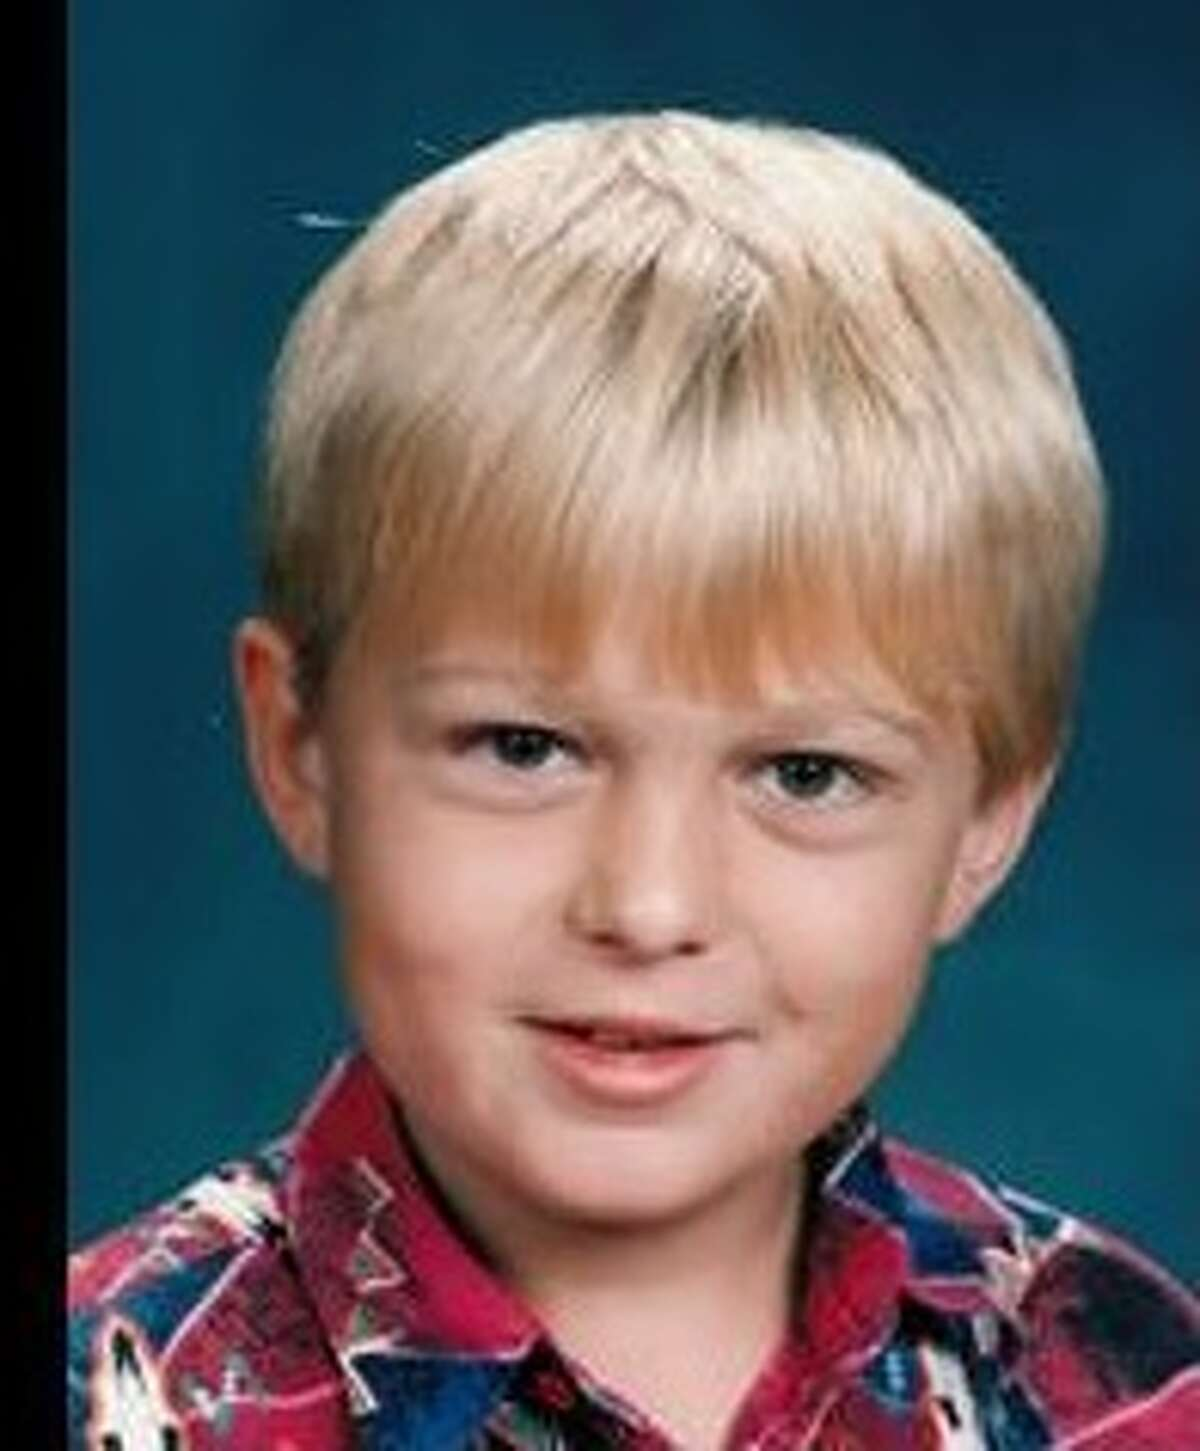 Chance Wackerhagen has not been seen since 1993, according to the Texas Department of Public safety.